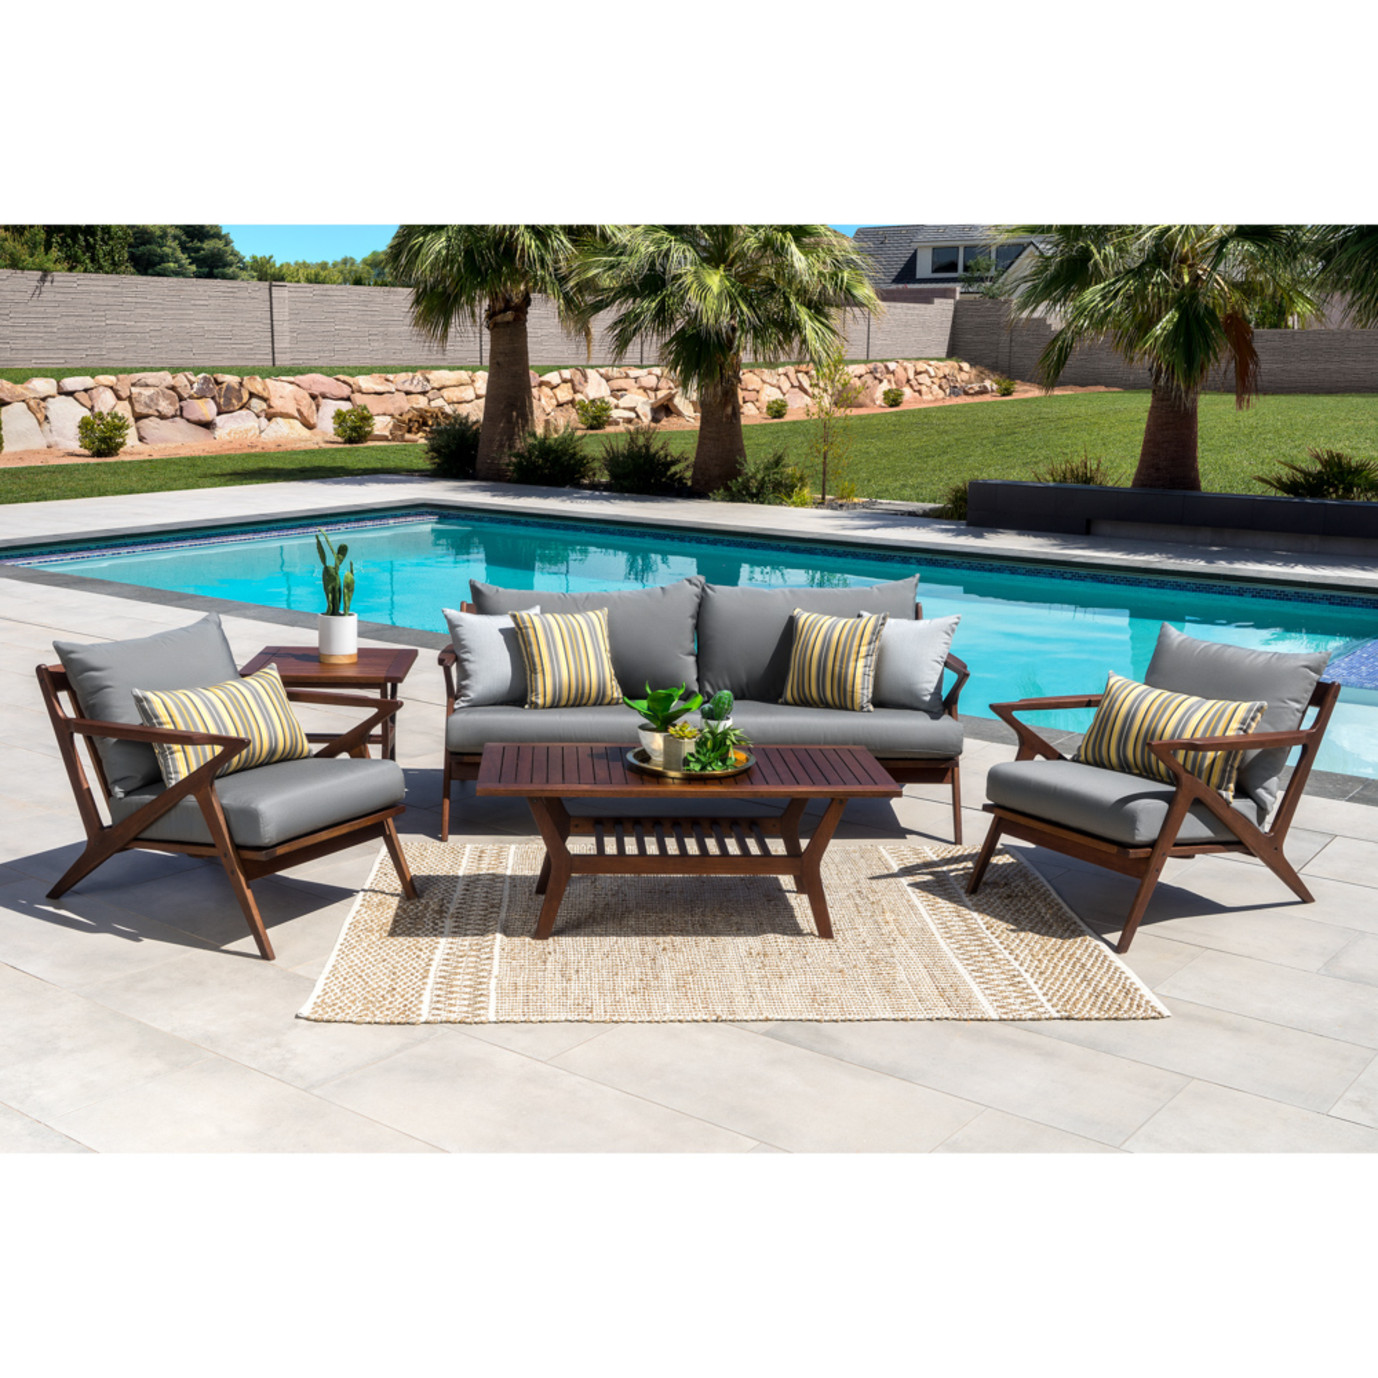 Vaughn 5pc Seating Set - Charcoal Gray